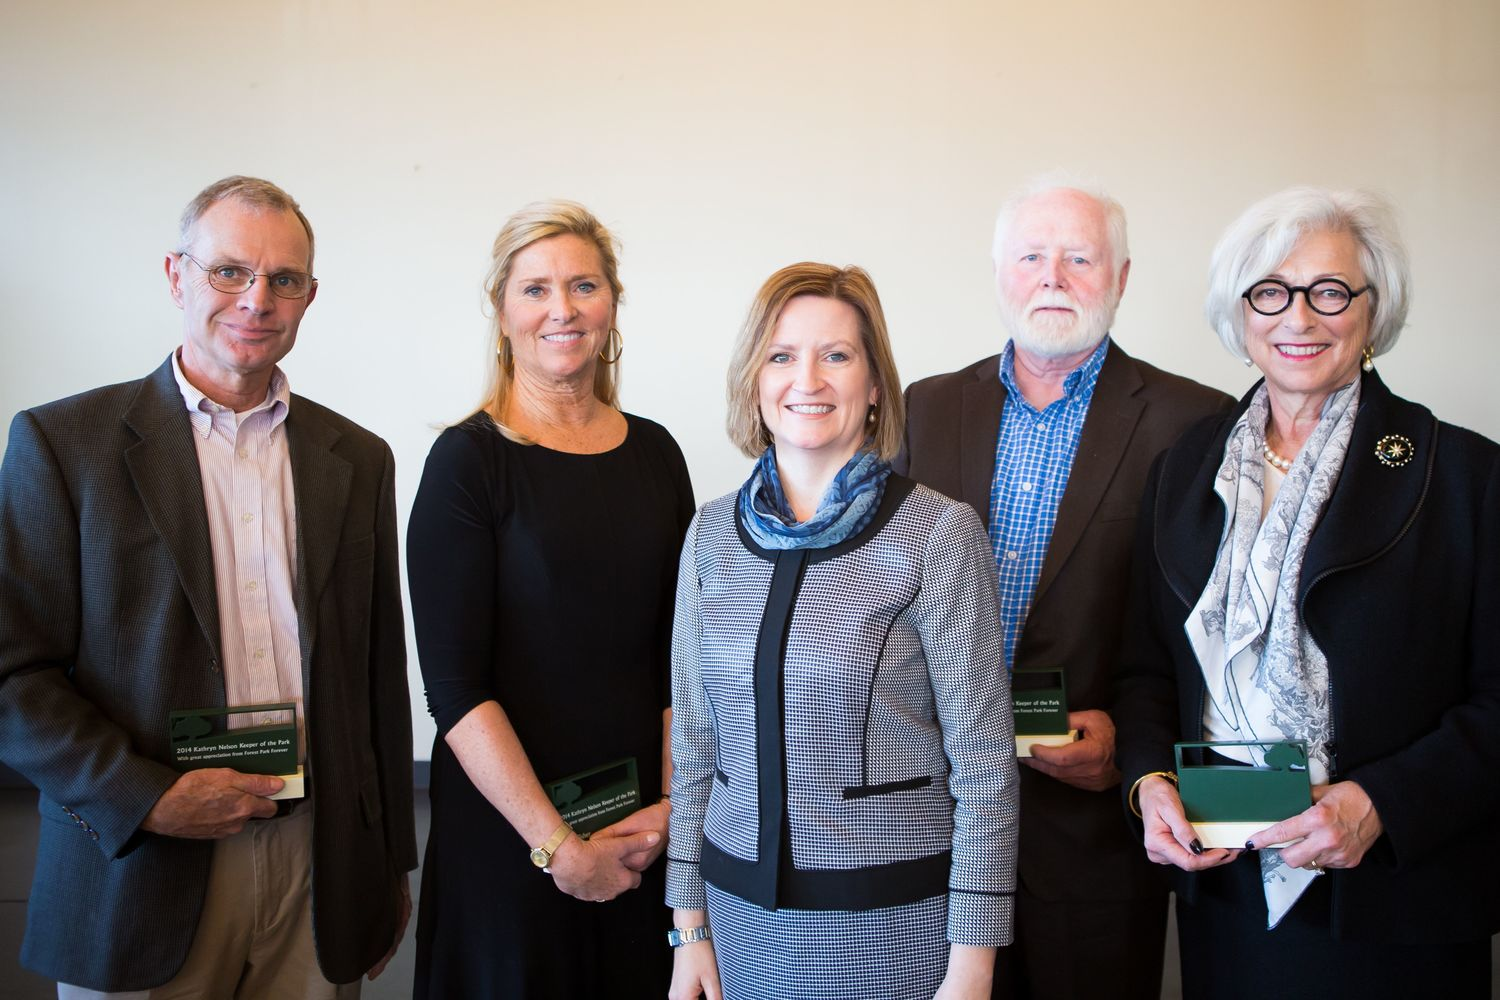 The 2014 awardees pose with FPF President and Executive Director Lesley S. Hoffarth, P.E.